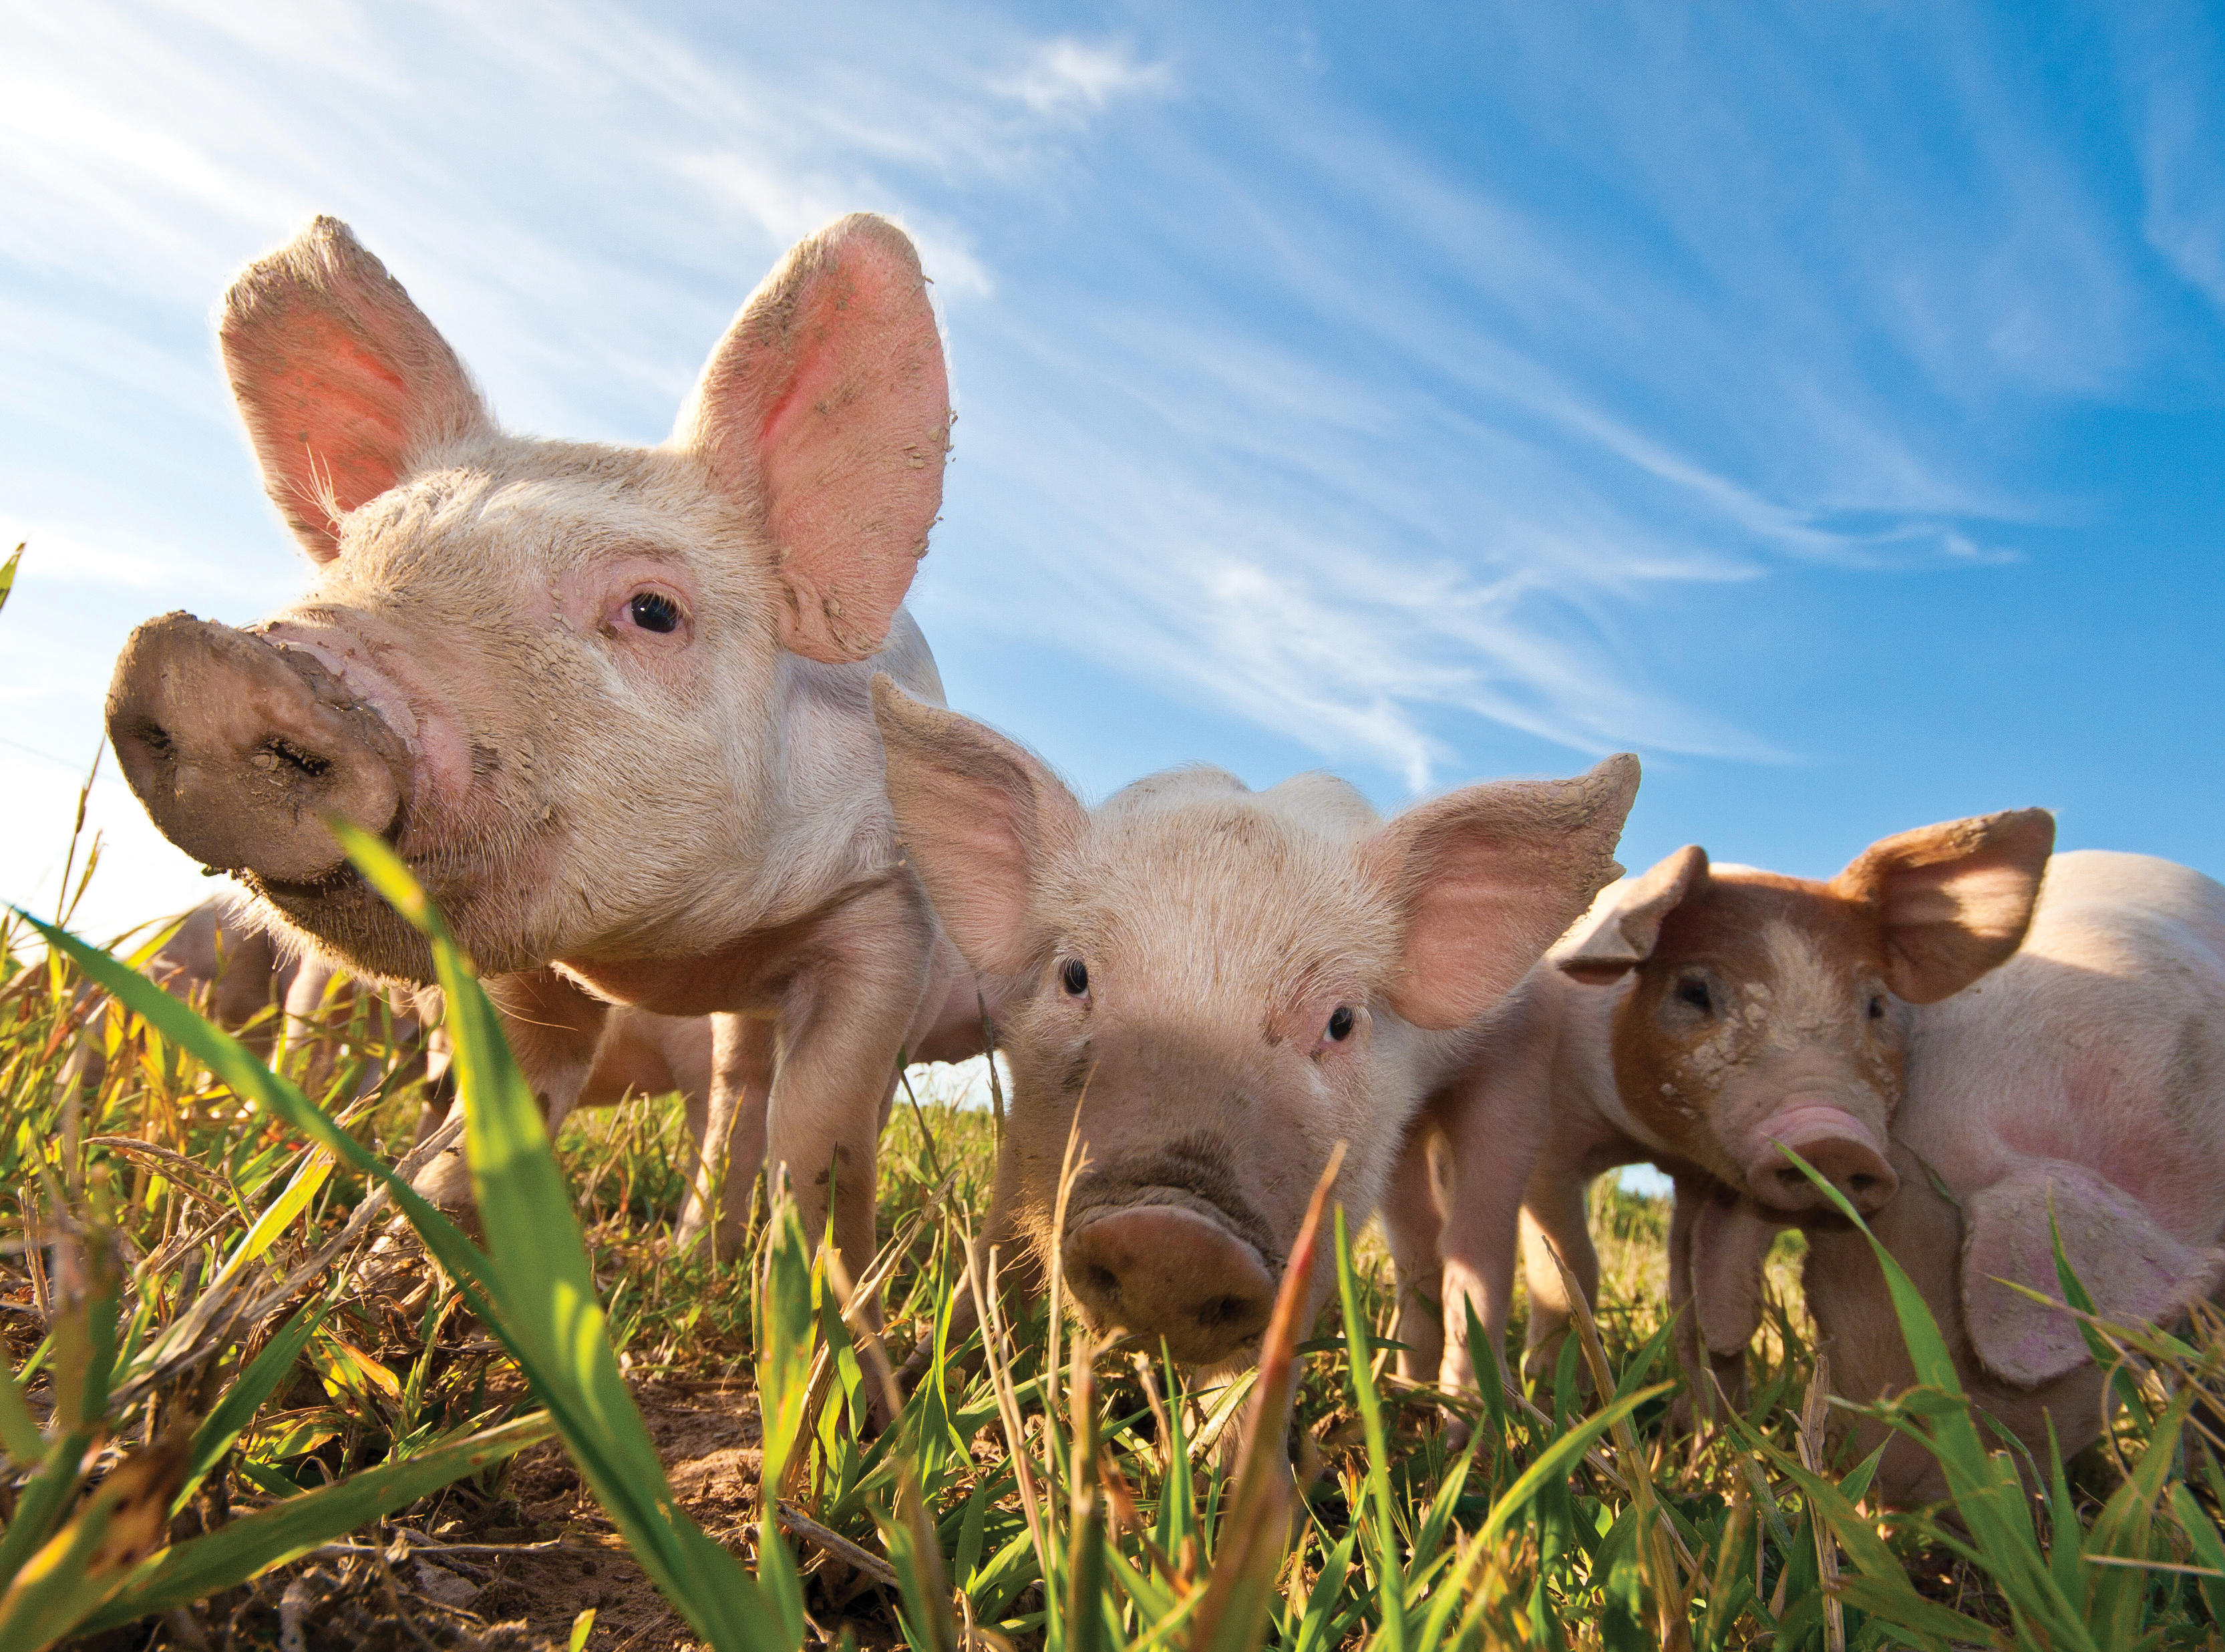 Creed announces funding of €500,000 for the roll out of a Lean Principles Programme for Pig Farmers